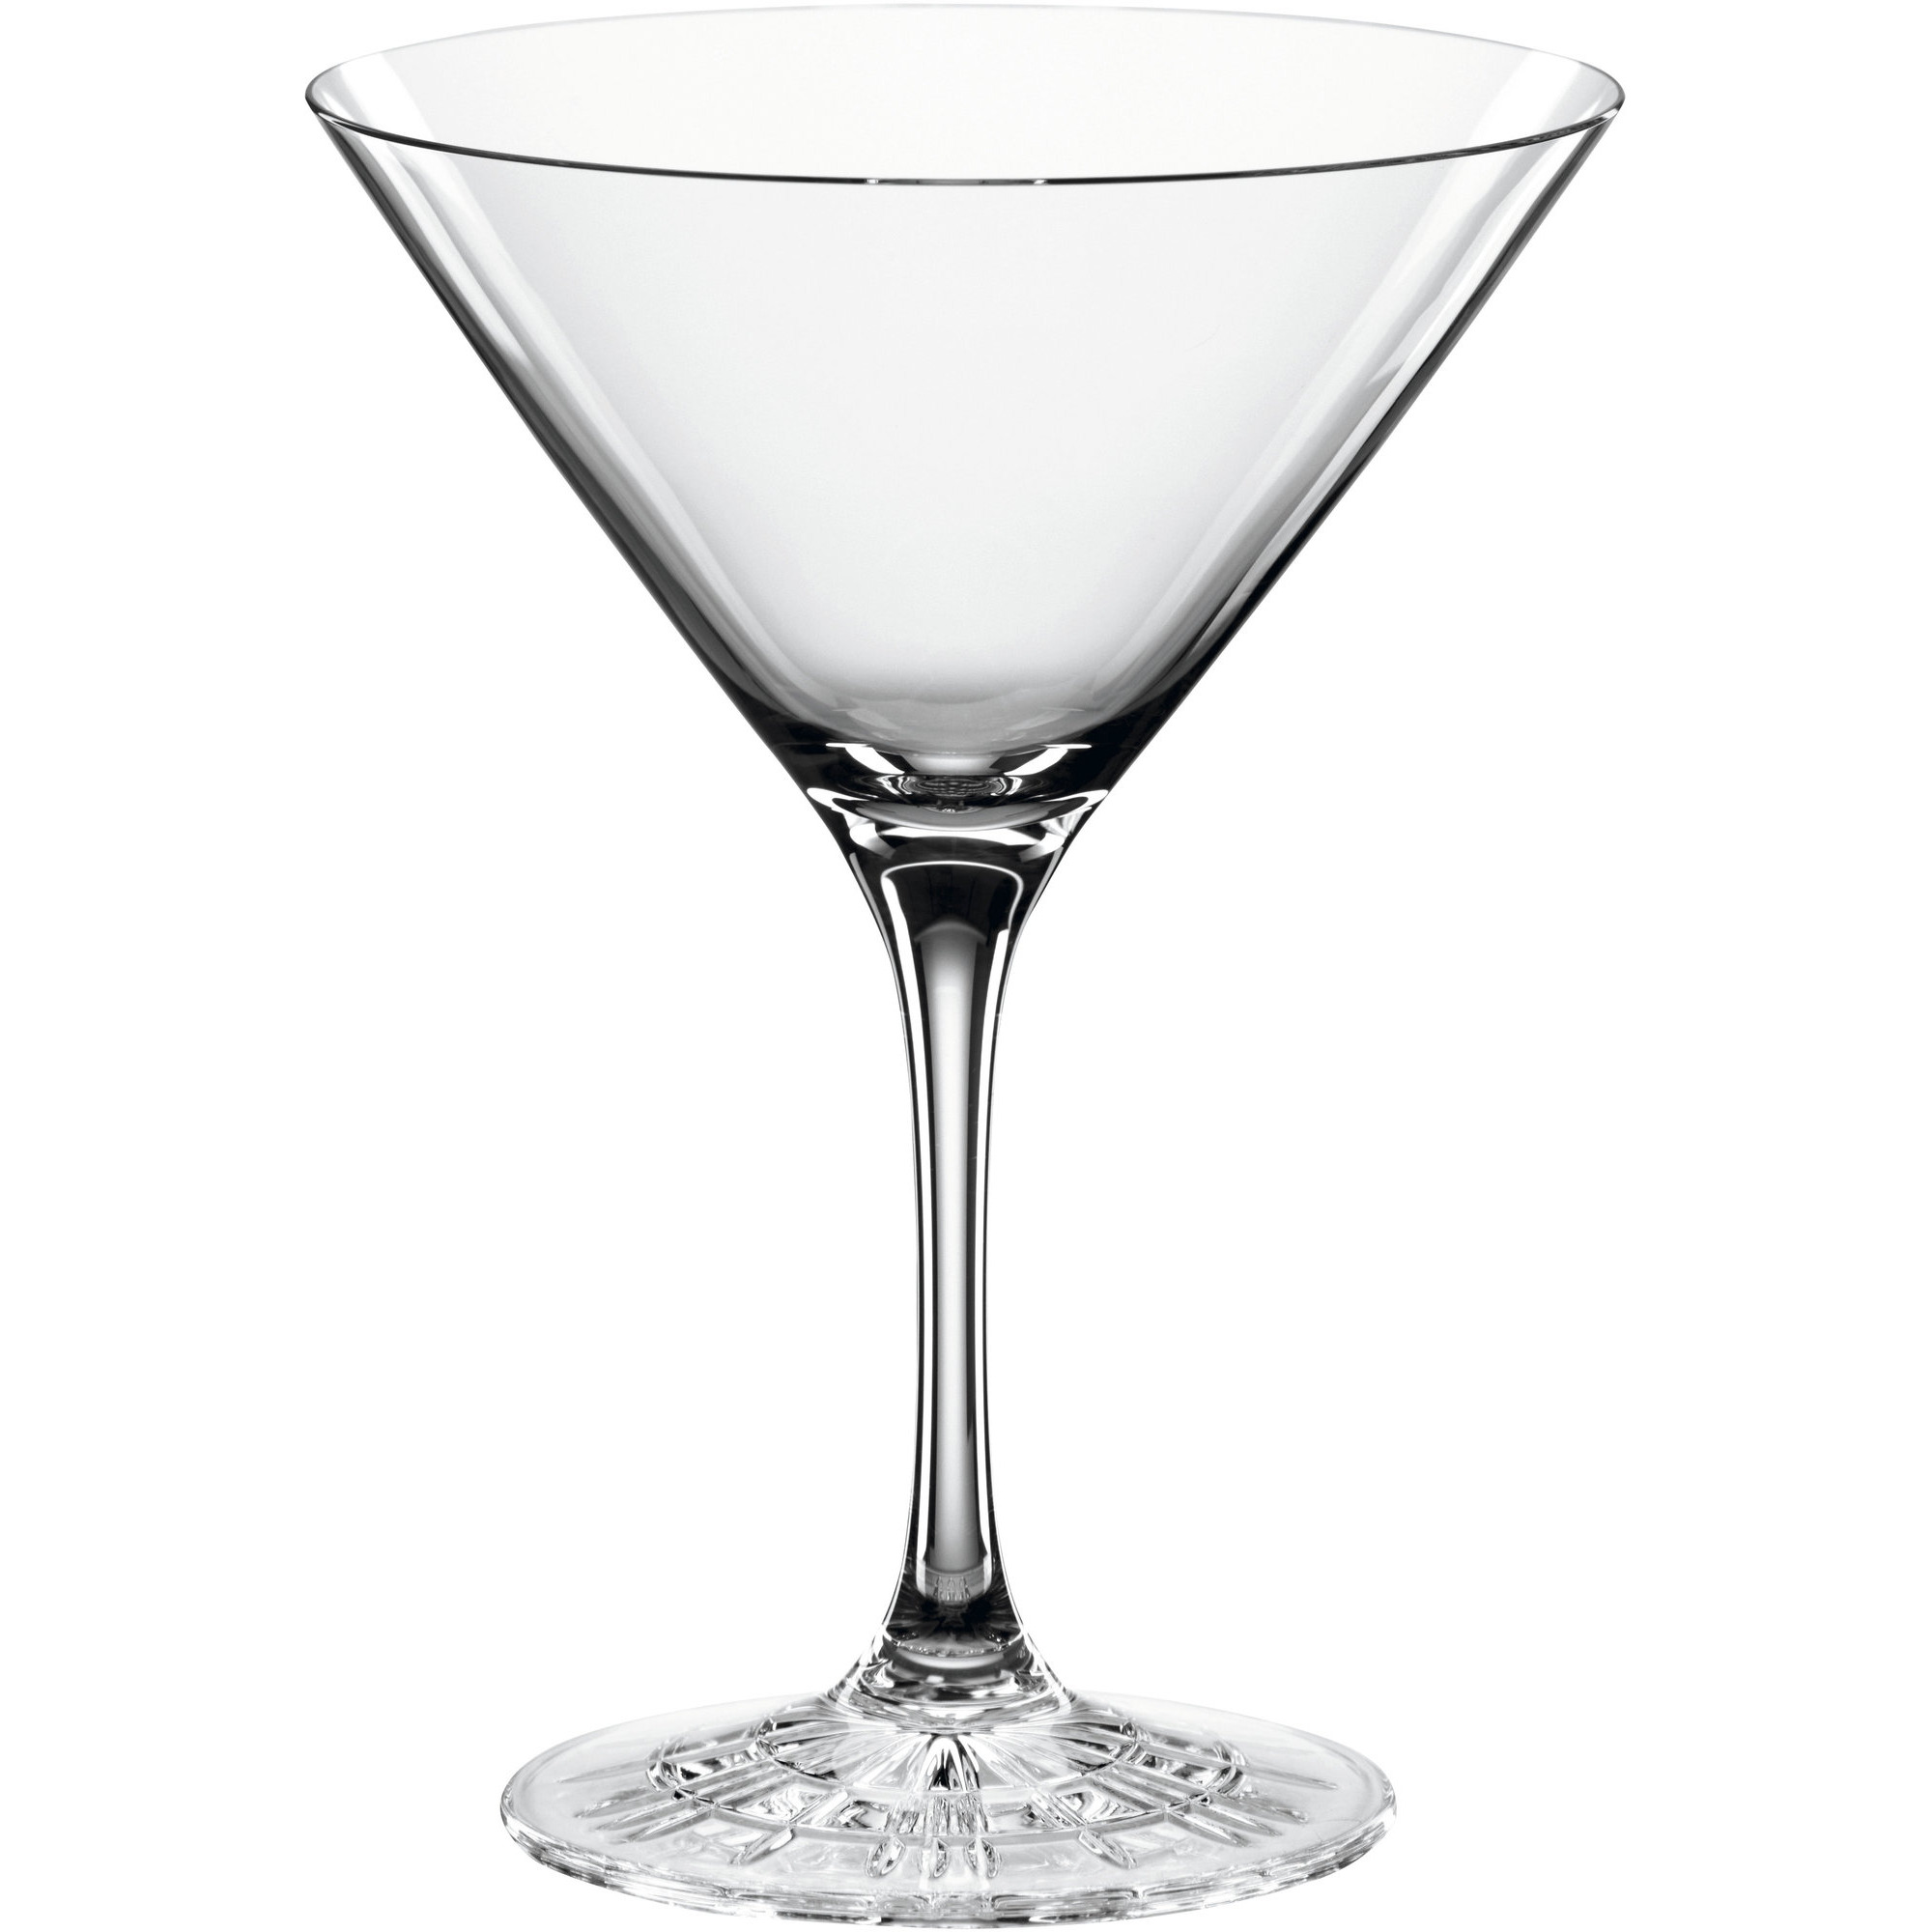 Spiegelau Perfect Cocktailglas 17cl 4-p